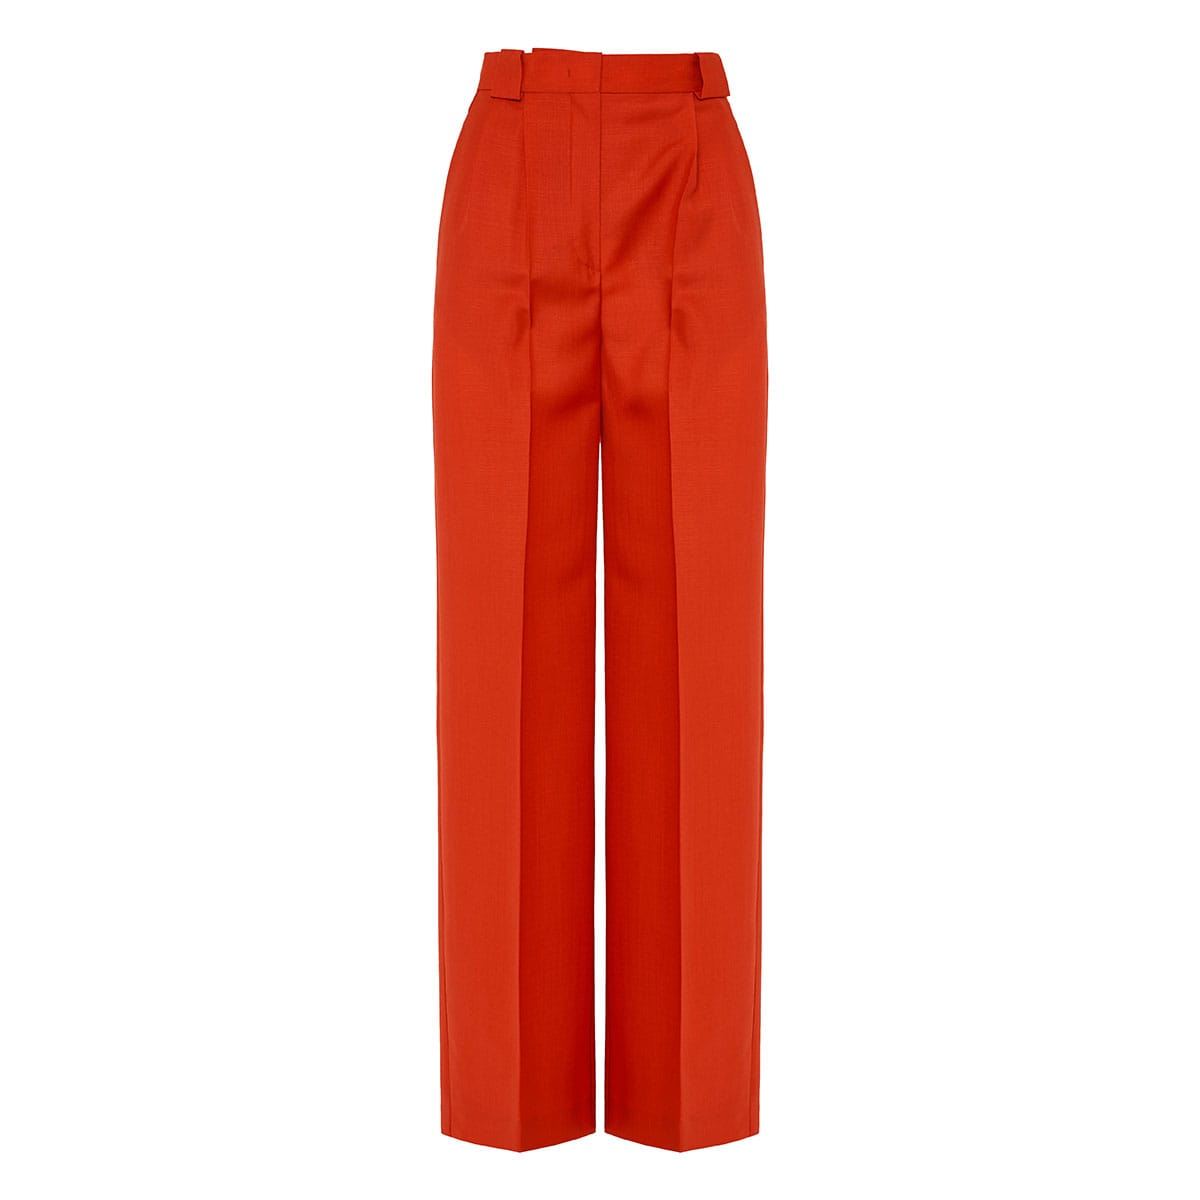 High-waist darted tailored trousers